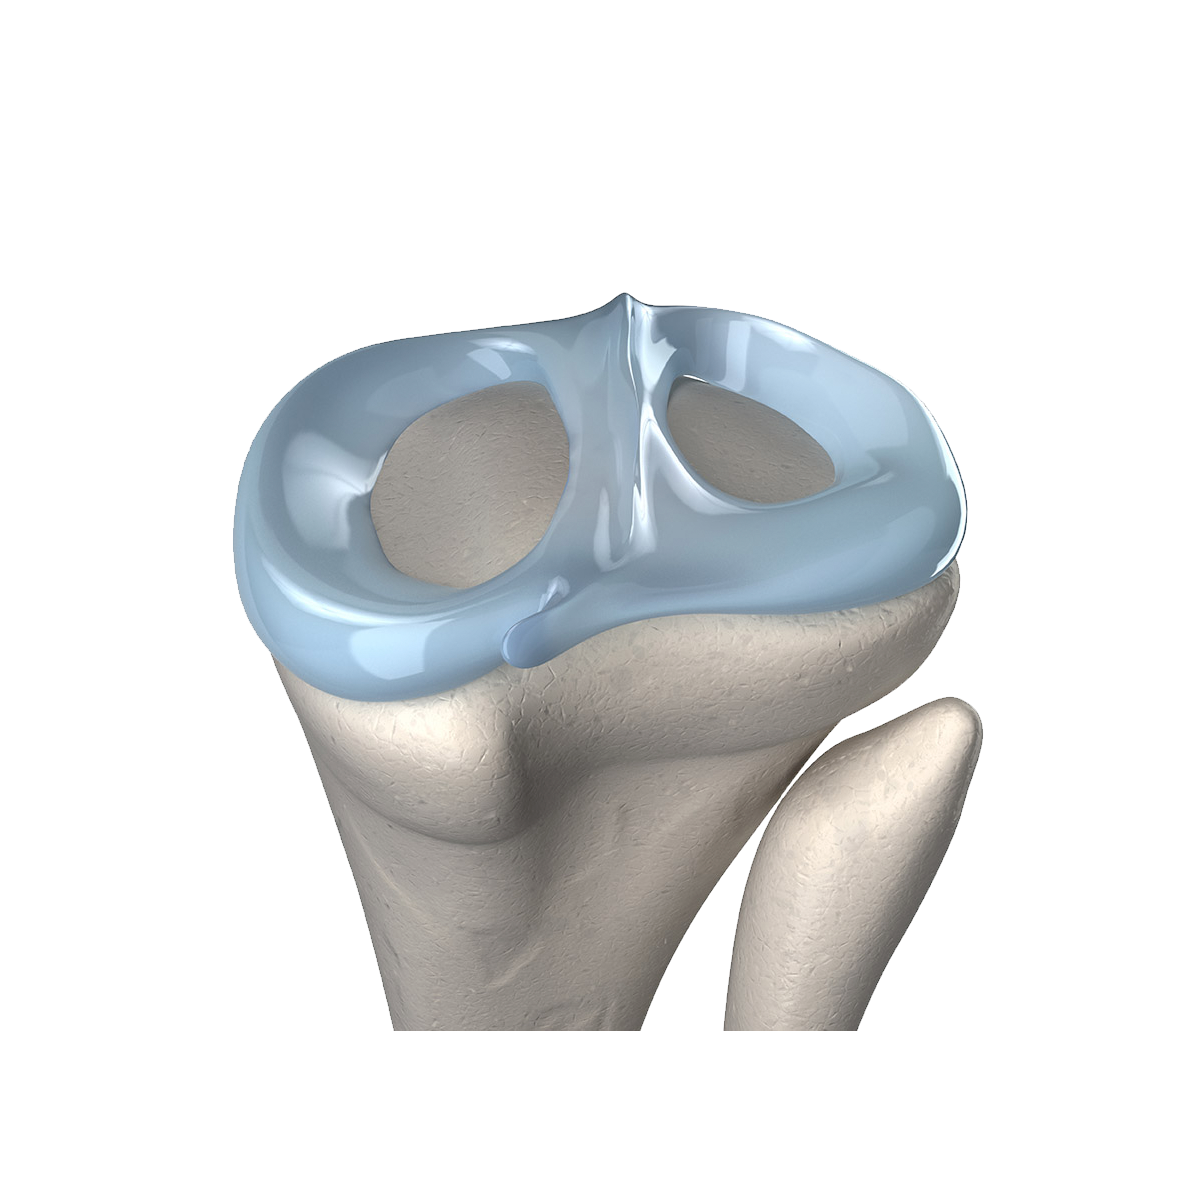 Meniscus implant